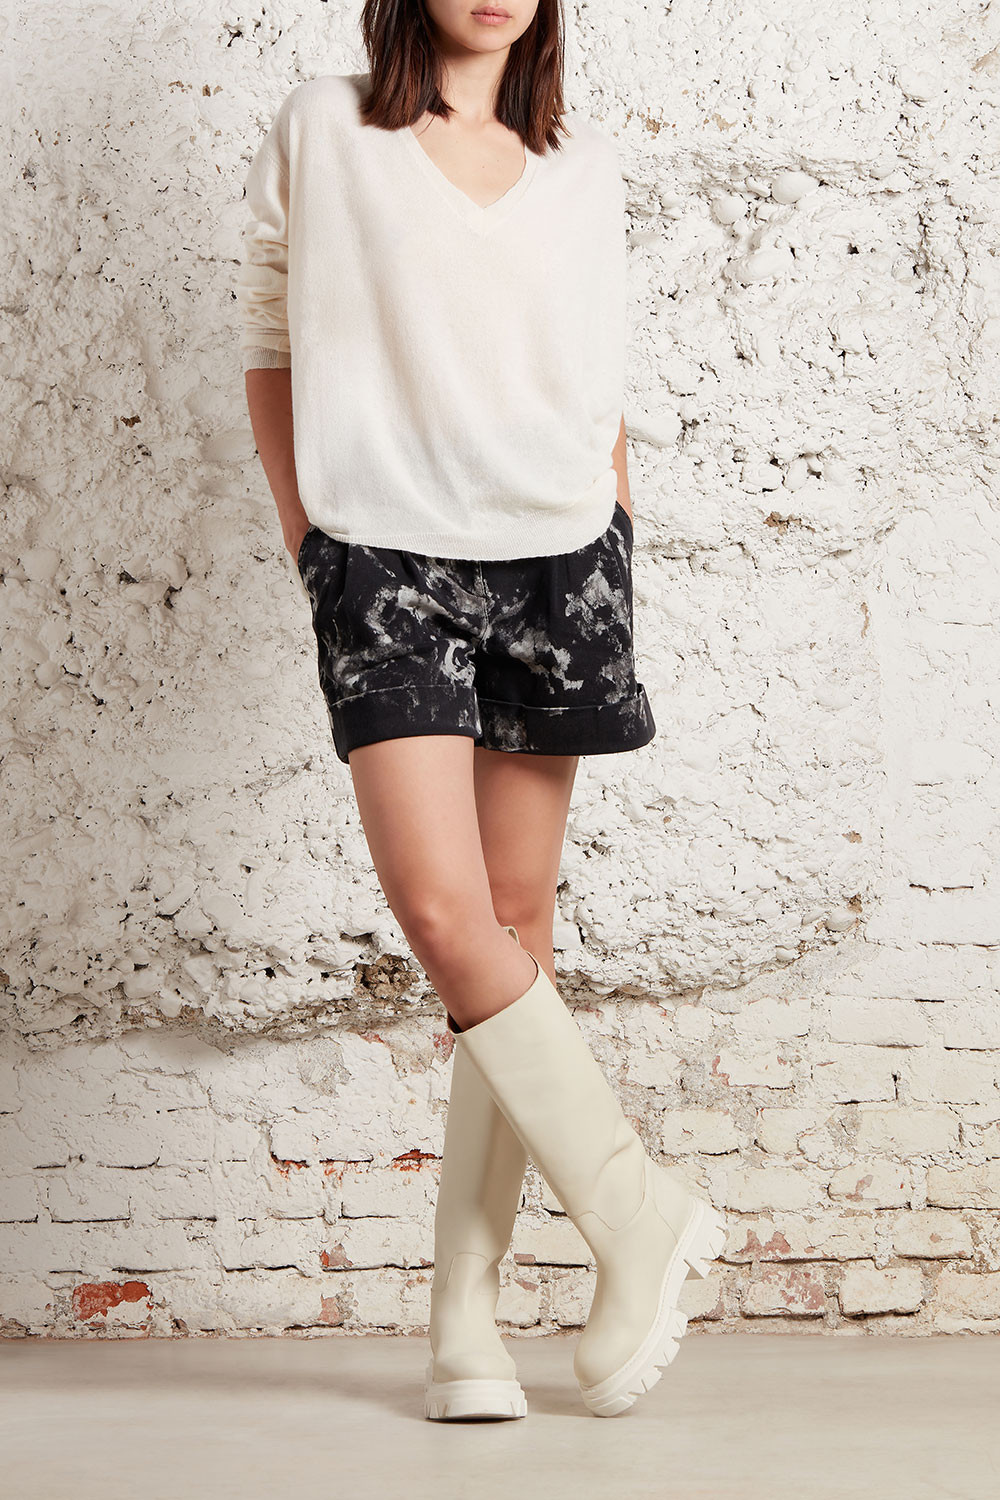 MARBLE SHORTS IN DENIM - CHIWID210097